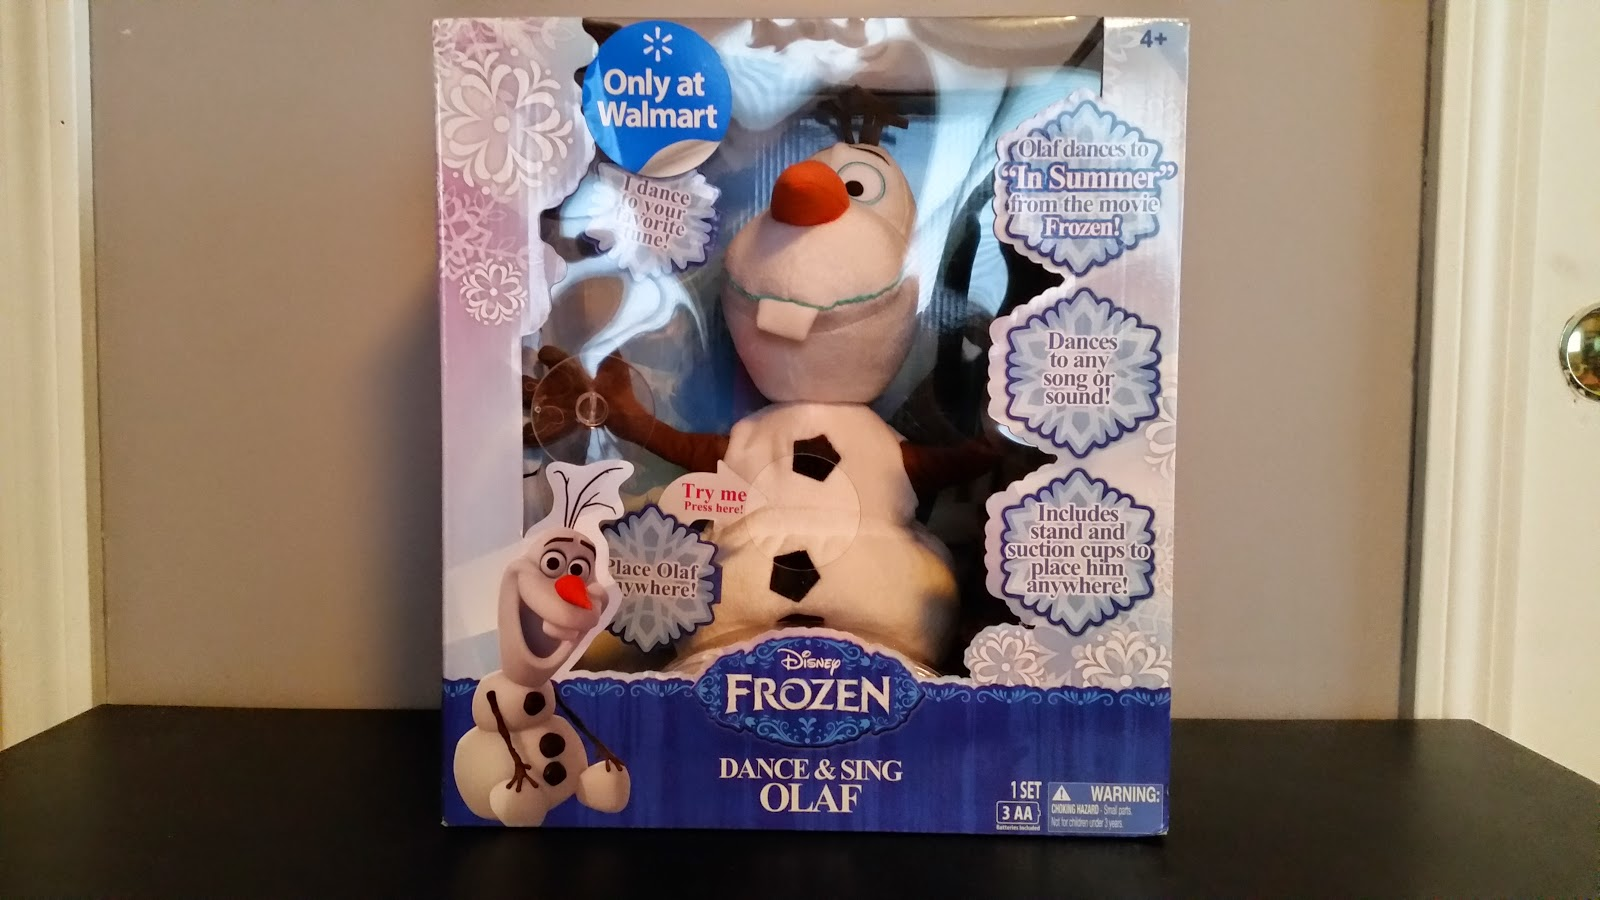 Frozen Dance & Sing Olaf at Walmart #ChosenByKids